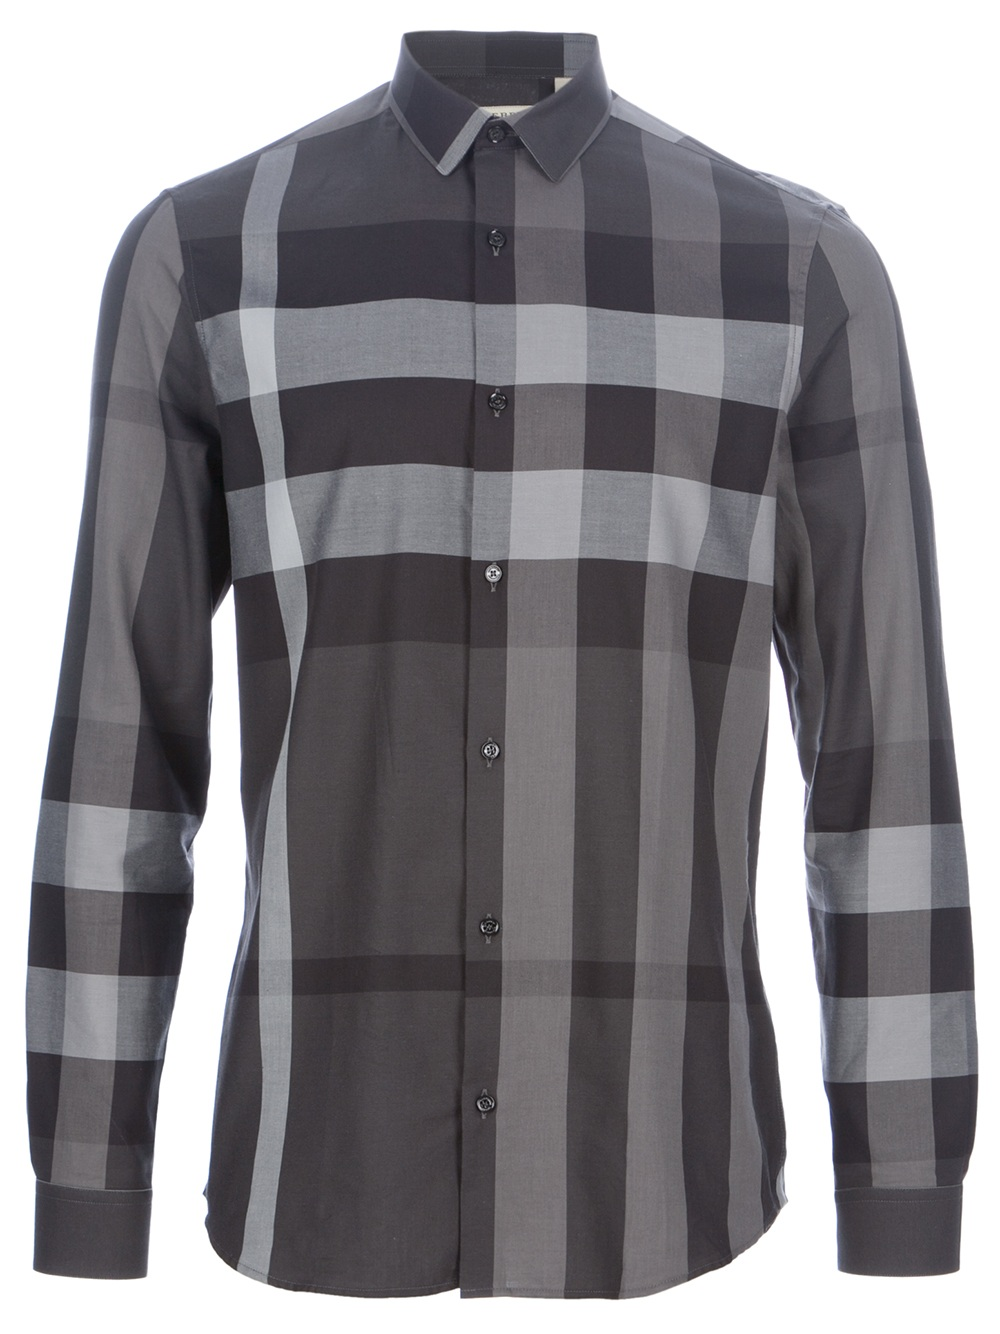 Burberry pembury check shirt in gray for men lyst for Where are burberry shirts made